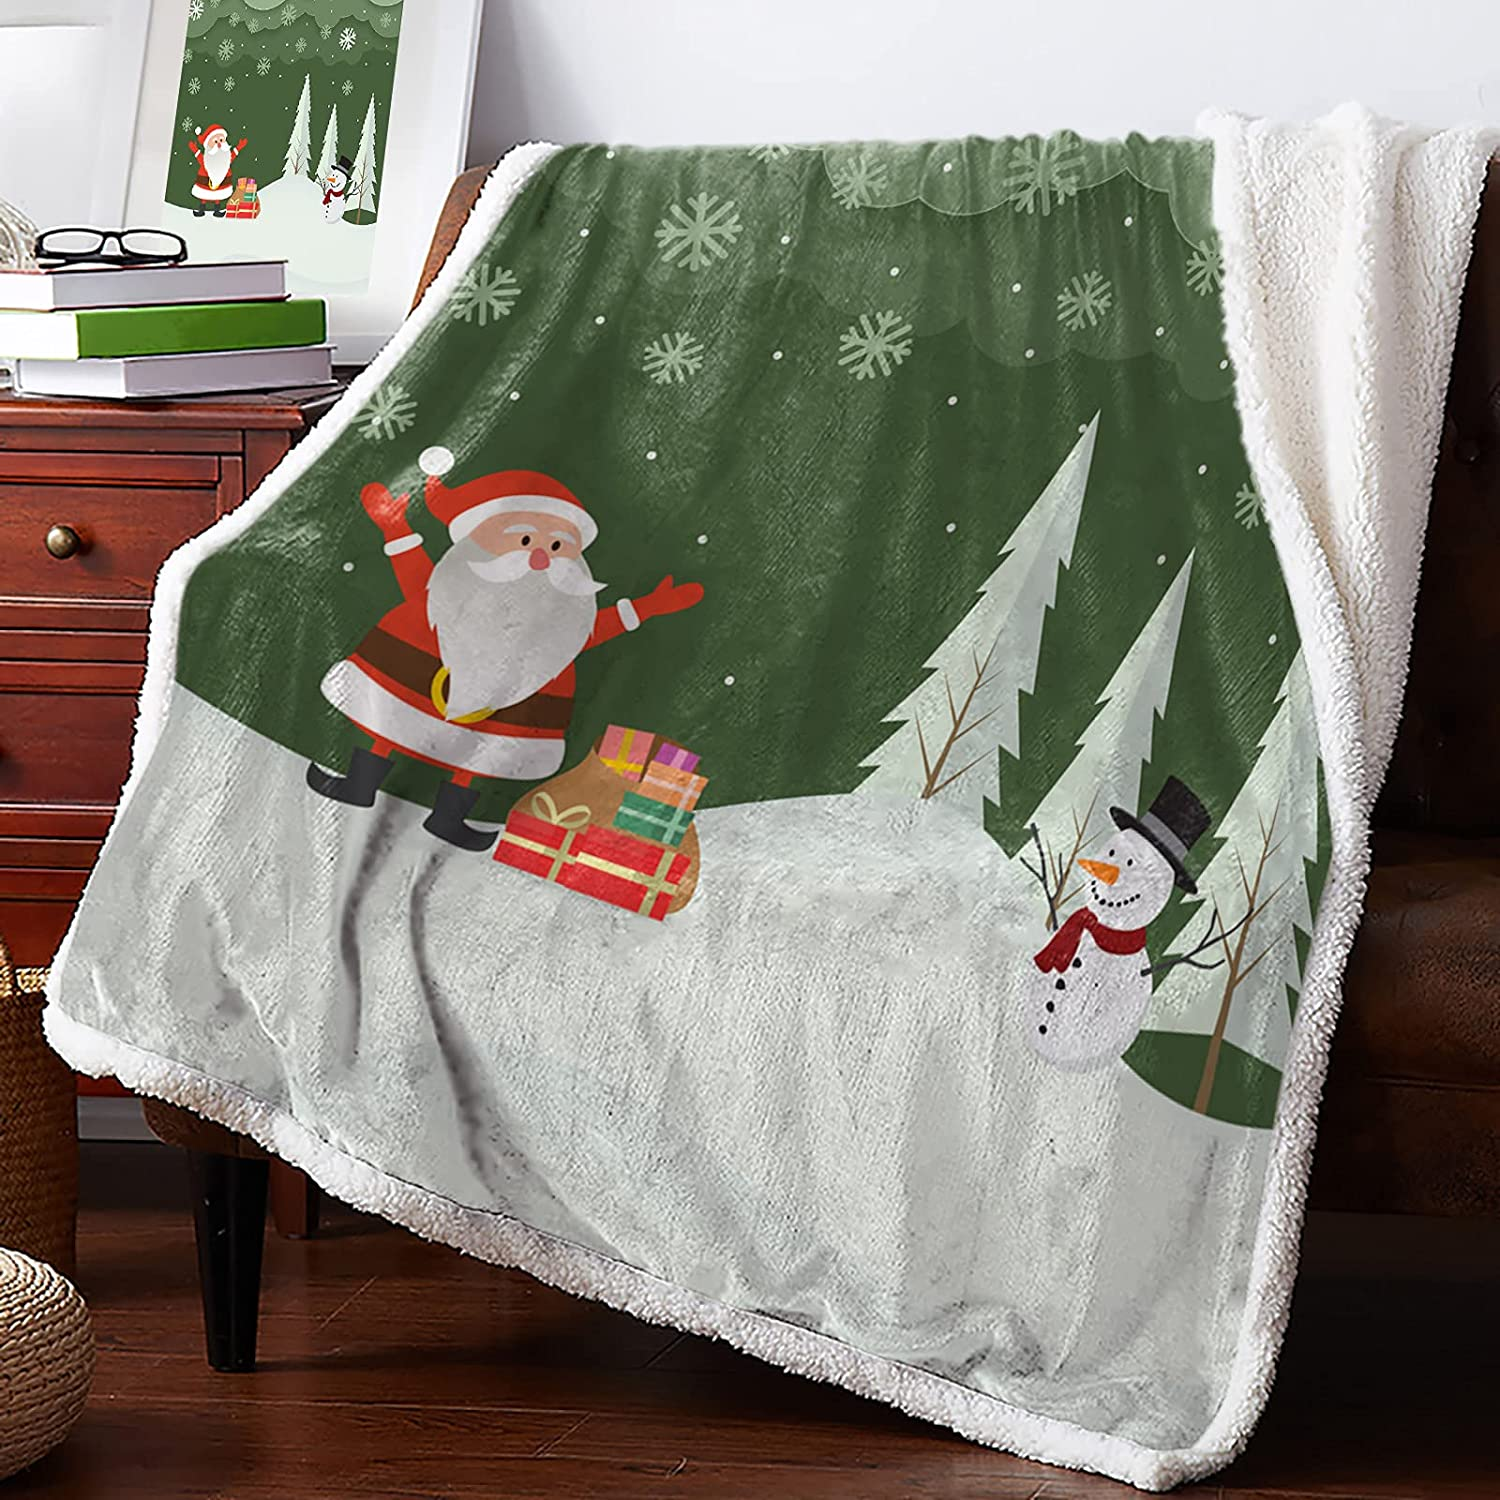 MuswannaA Sherpa Fleece Throw Max 90% OFF Blanket Santa and S online shop Snowman in The